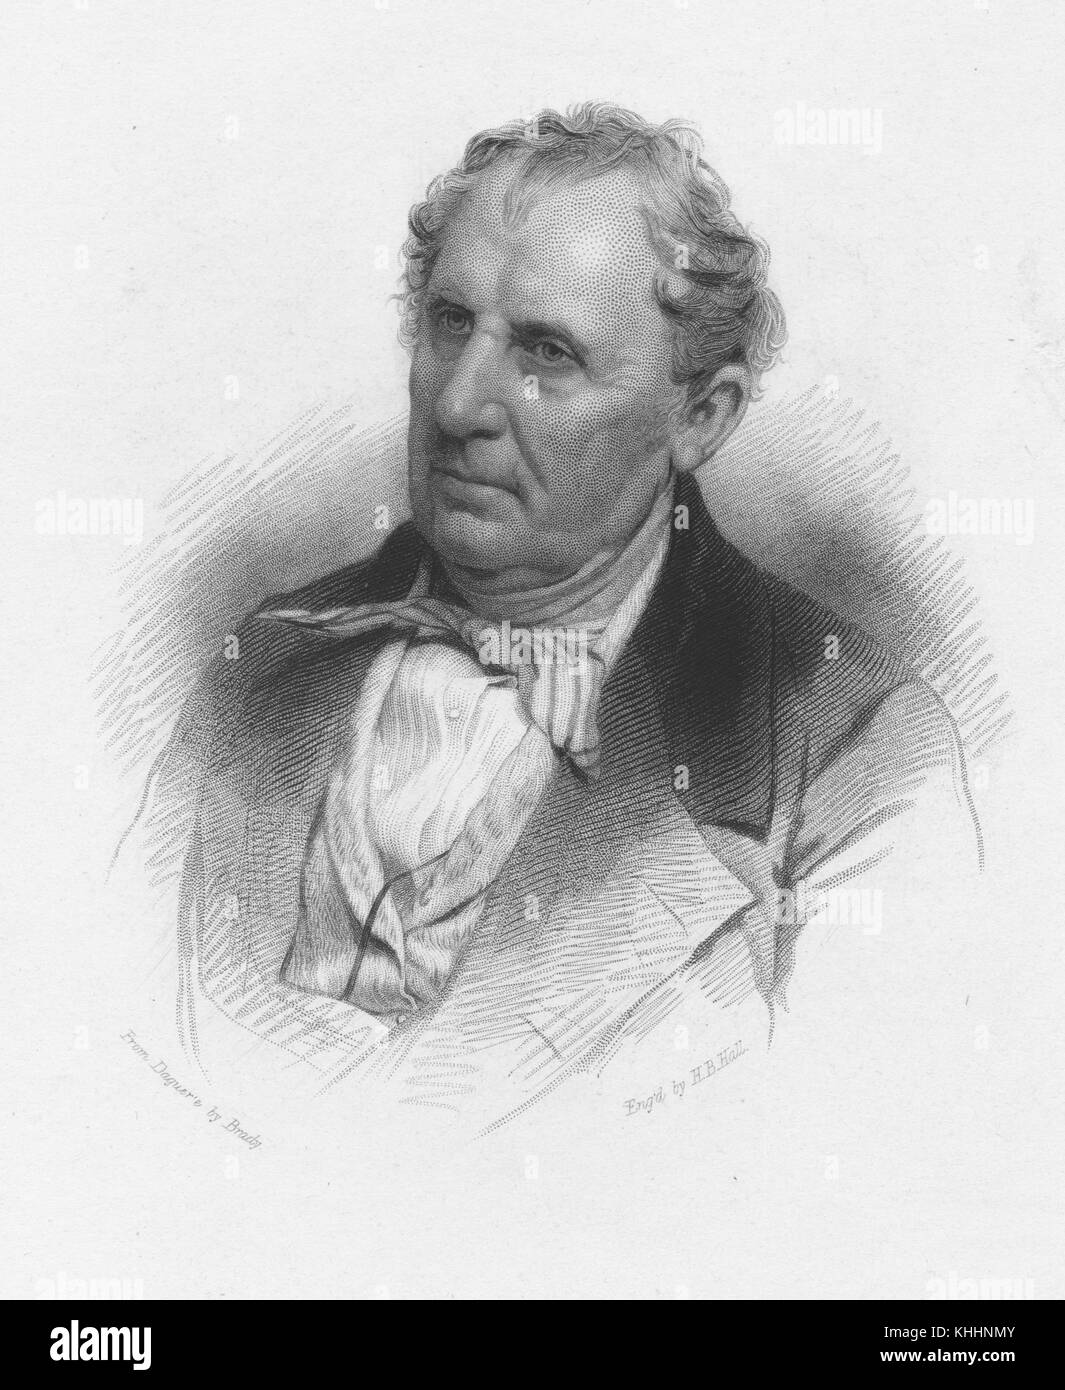 Engraved portrait of James Fenimore Cooper, author of The Last of the Mohicans, by HB Hall from a daguerreotype - Stock Image